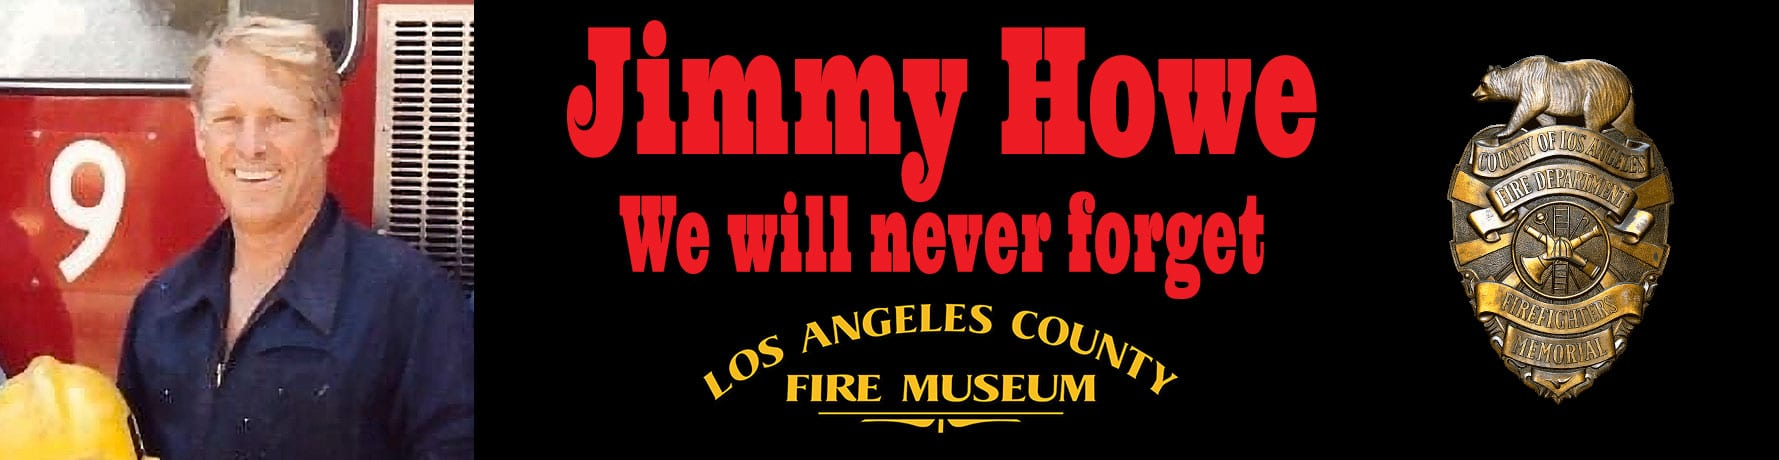 Jimmy Howe, We will never forget